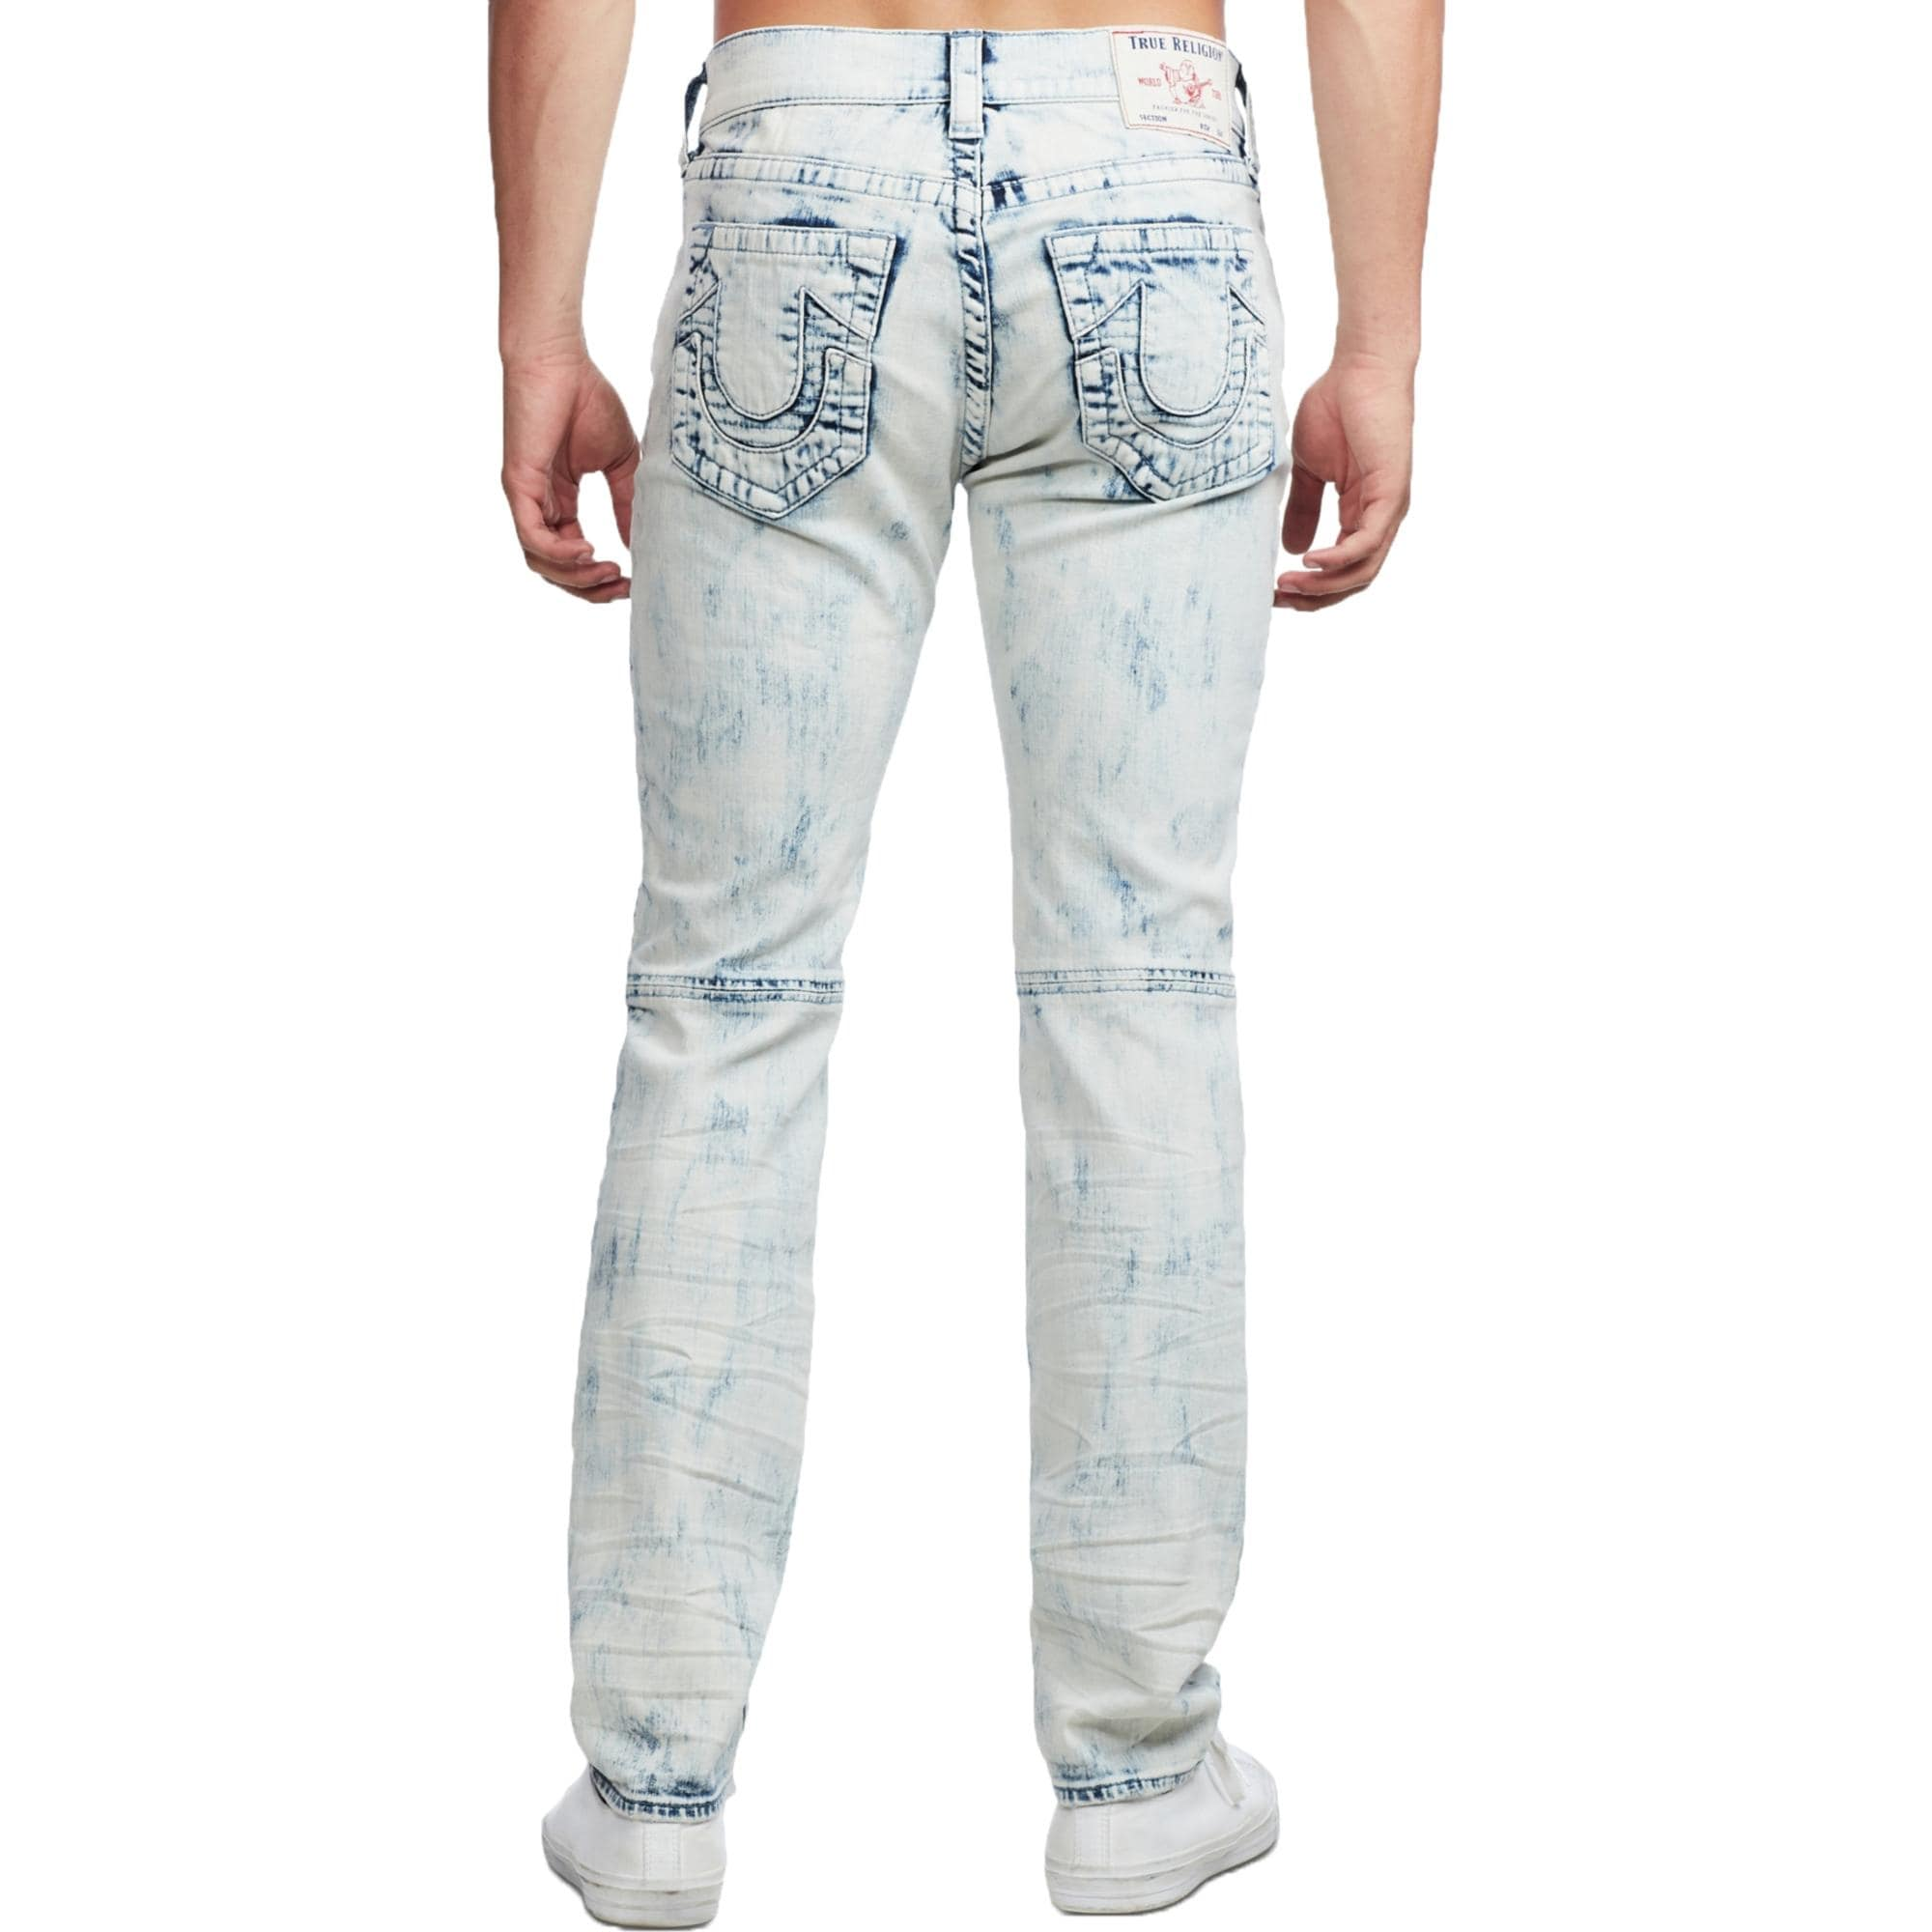 True Religion Mens Rocco Skinny Jeans Denim Relaxed Fit Battery Acid